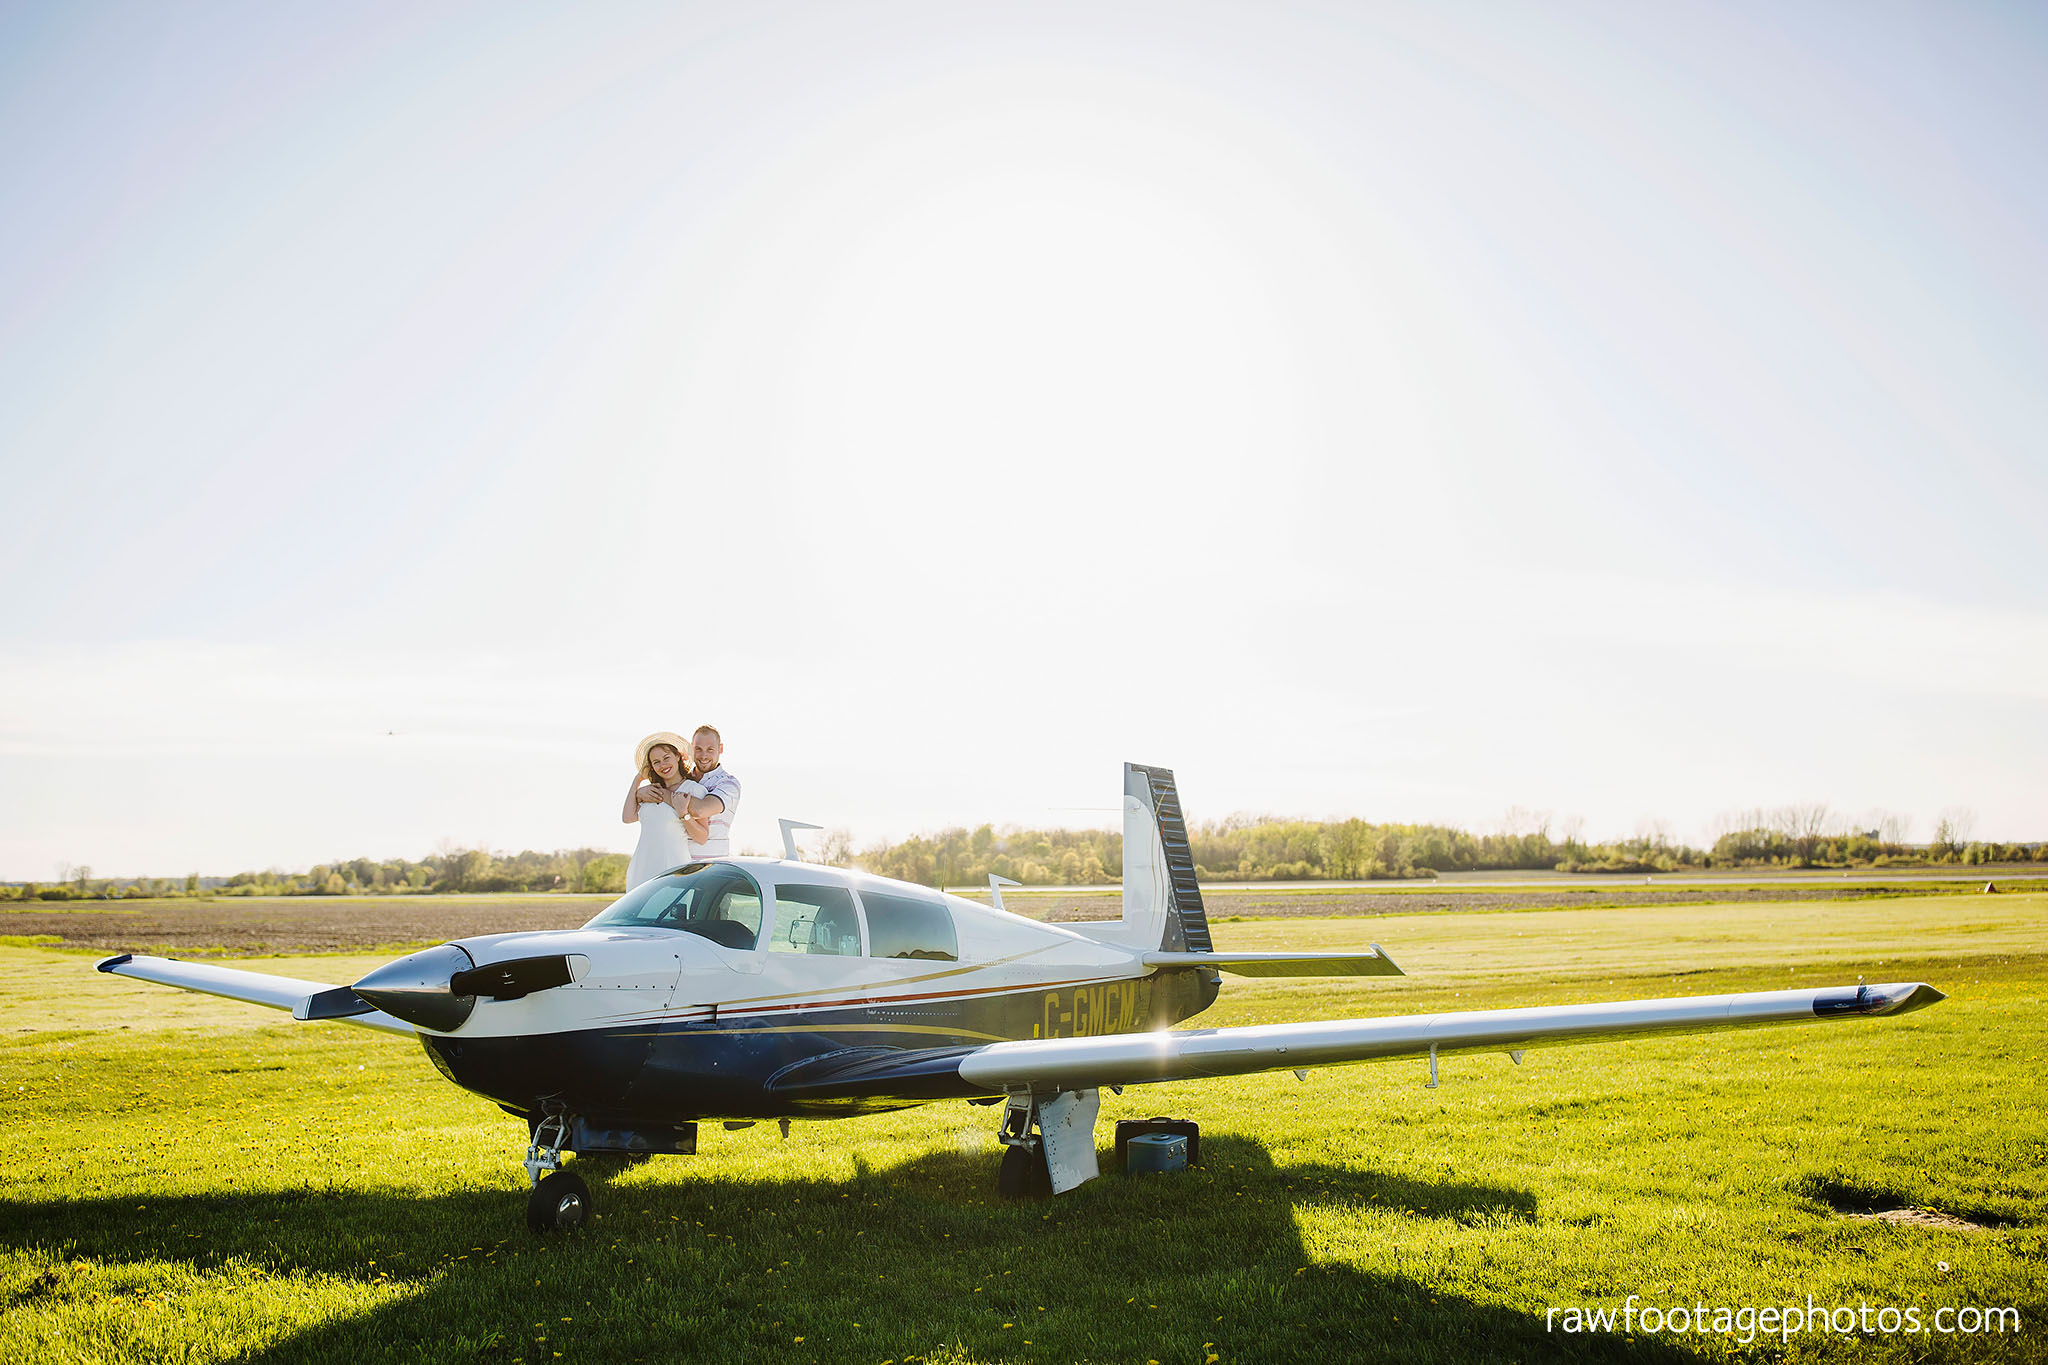 london_ontario_wedding_photographer-raw_footage_photography-engagement_session-airport_session-airplane-balloons-apple_orchard-spring_blooms-apple_blossoms006.jpg